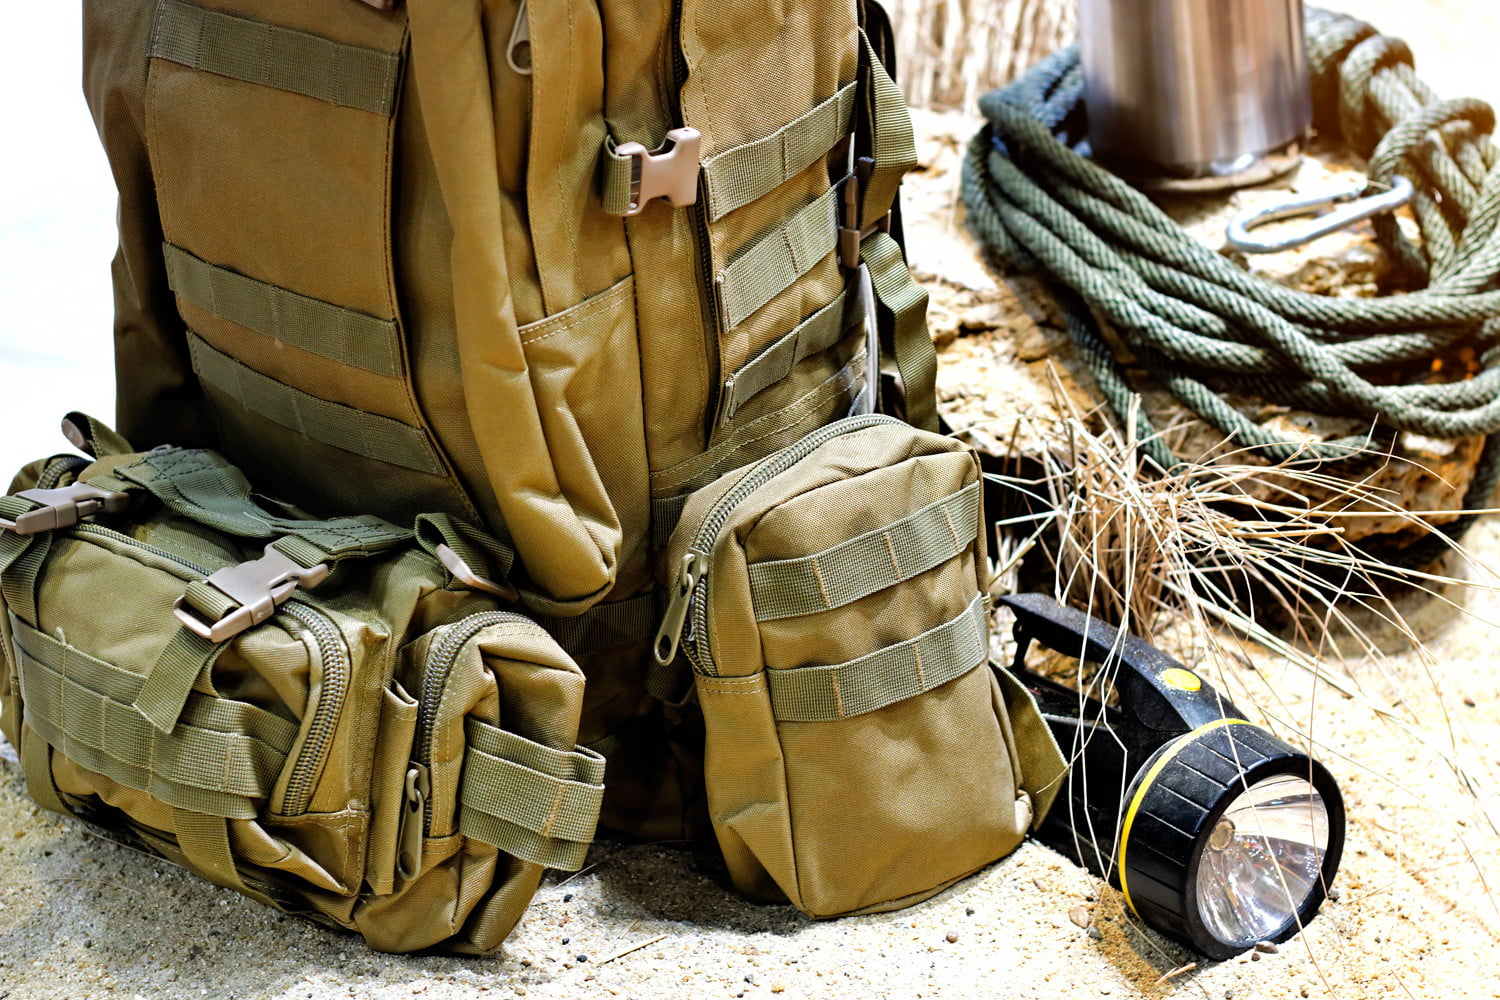 The 10 Best Tactical Backpacks You Need for a Rugged Commute or Adventure